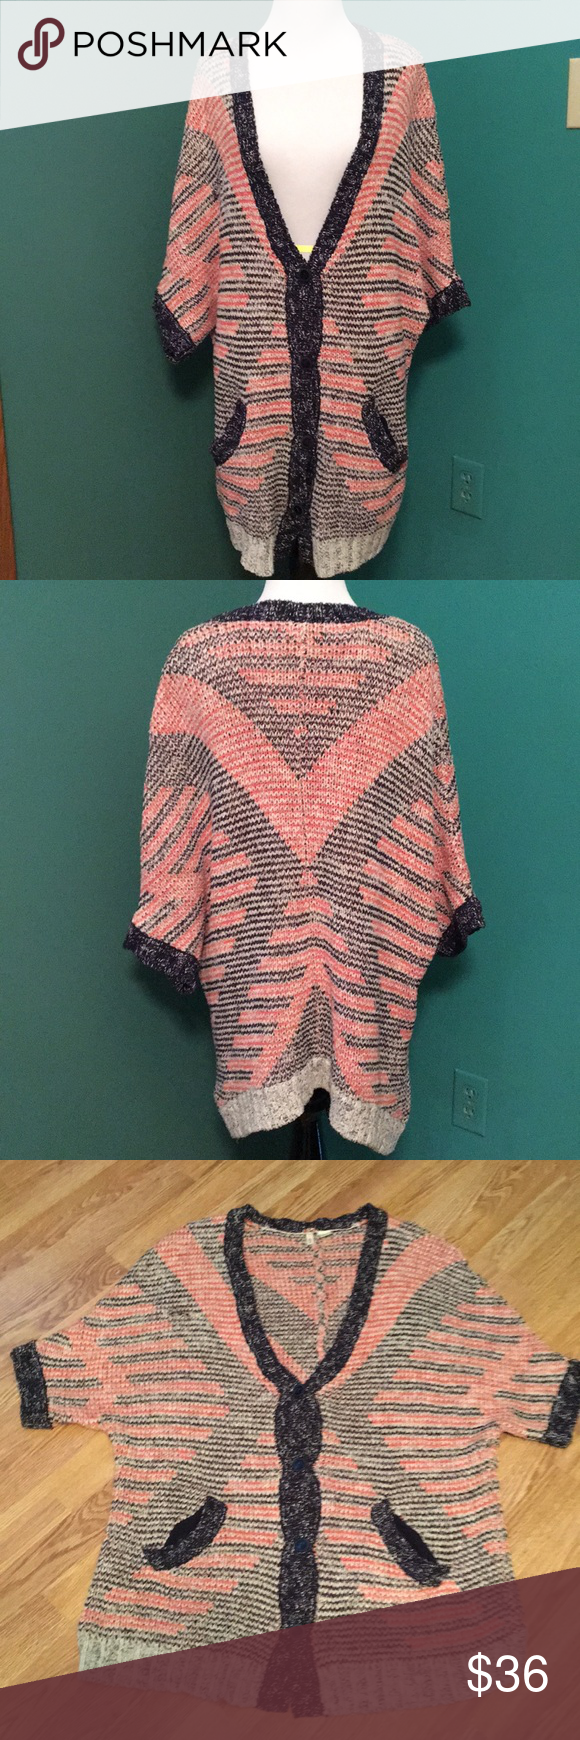 Anthropologie Moth cardigan sweater | Short sleeve sweater